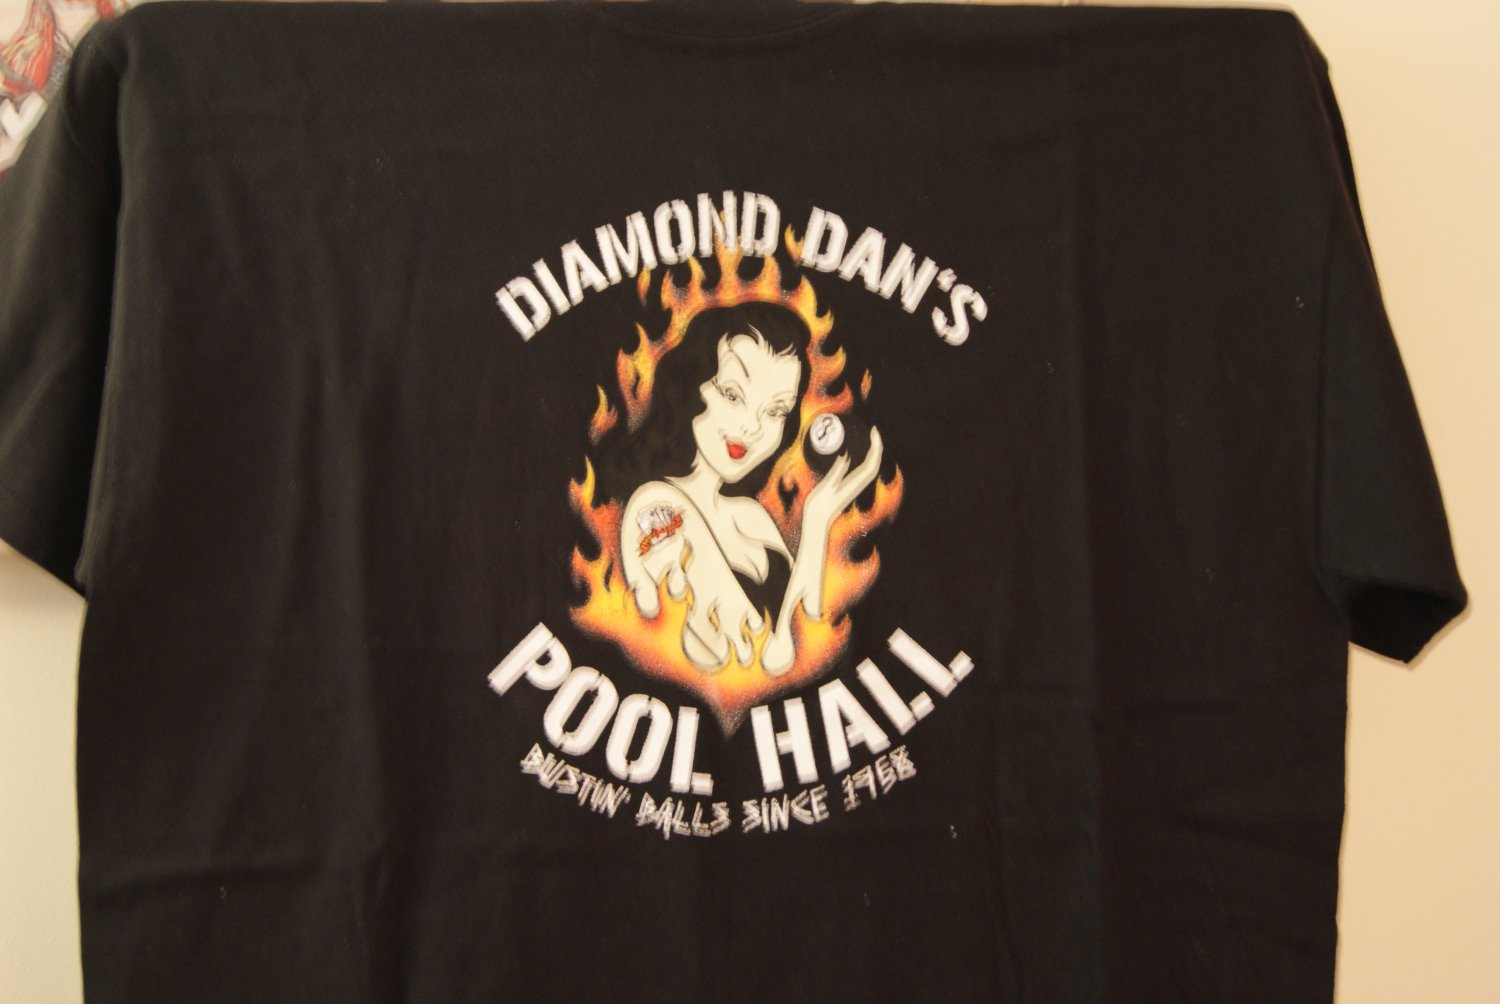 Diamond Dan's pool hall tee